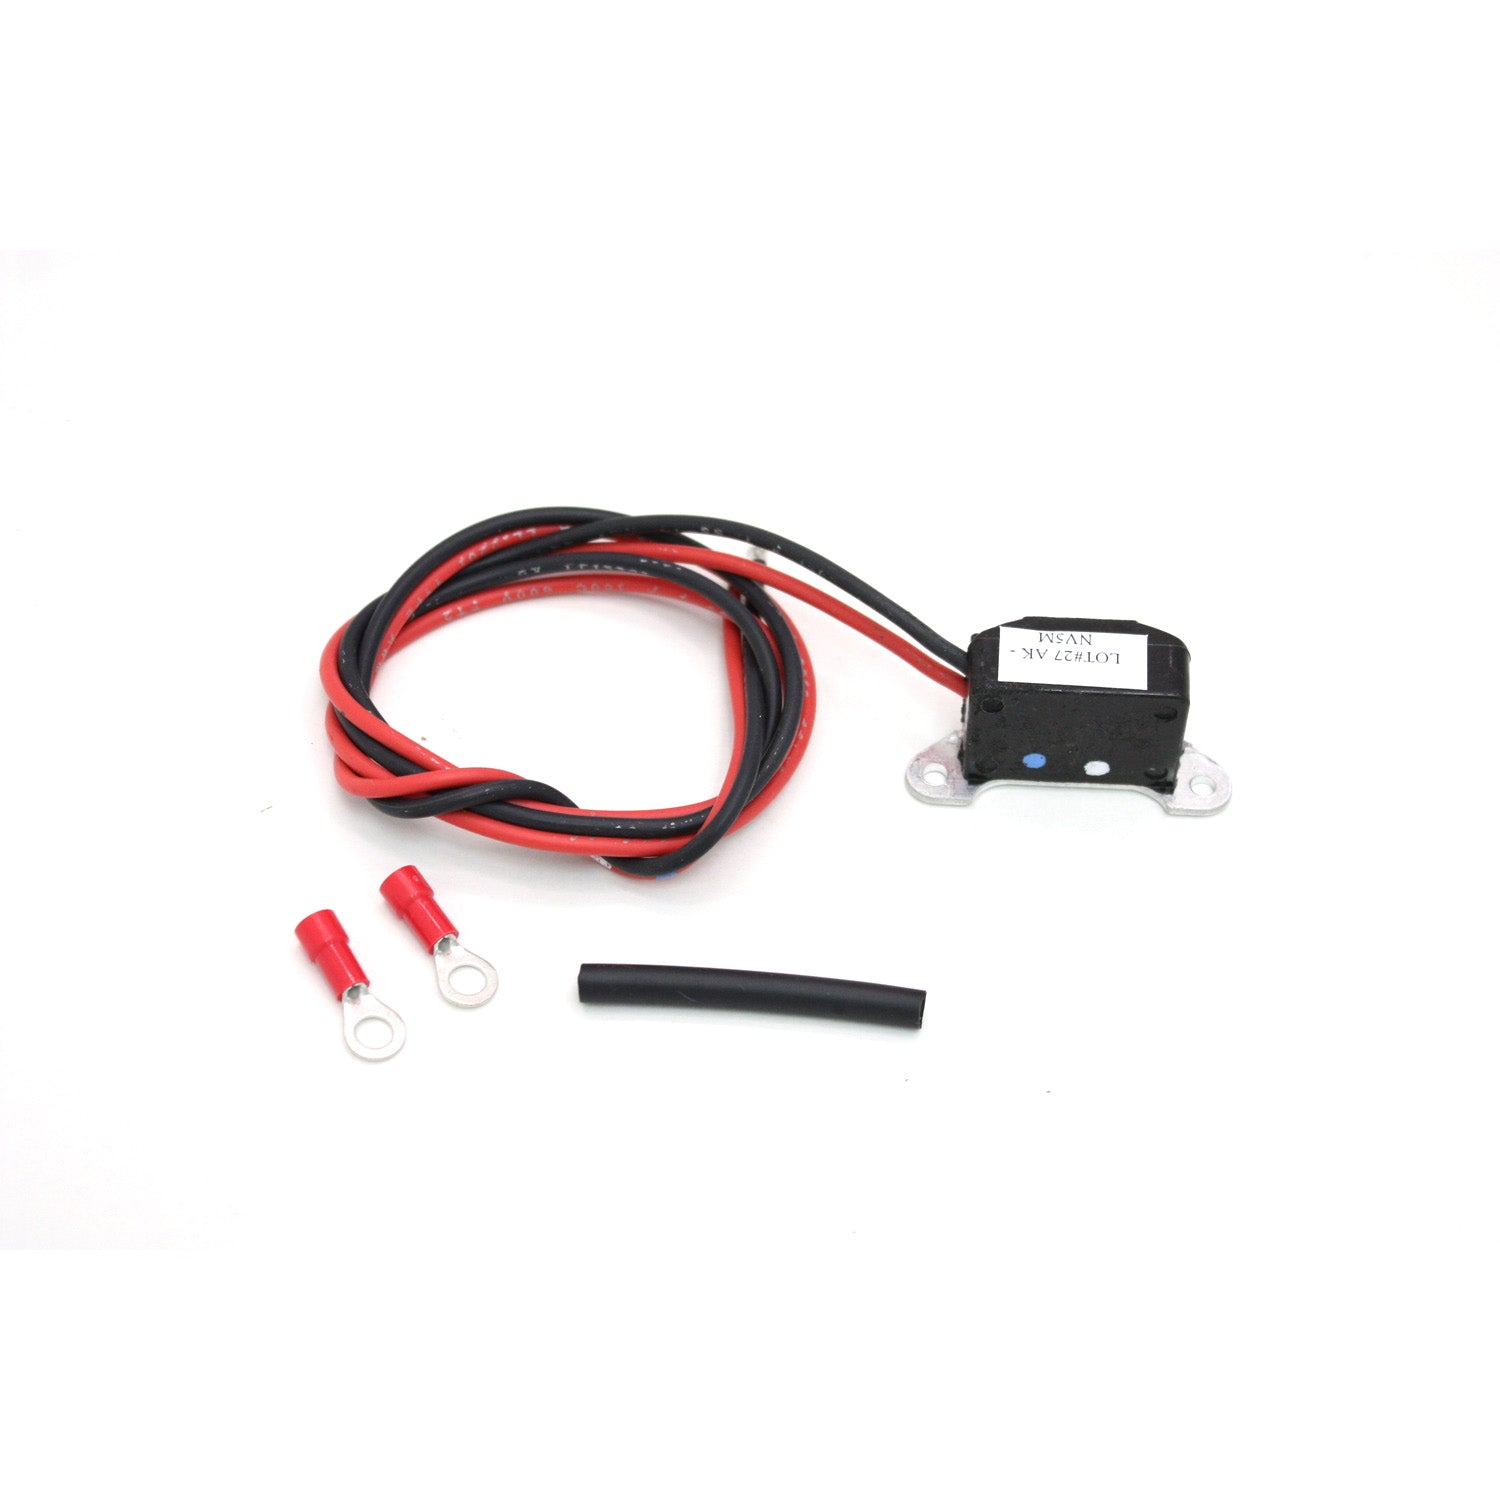 PerTronix D500706 Module (replacement) Ignitor for PerTronix Flame-Thrower VW Billet Distributor